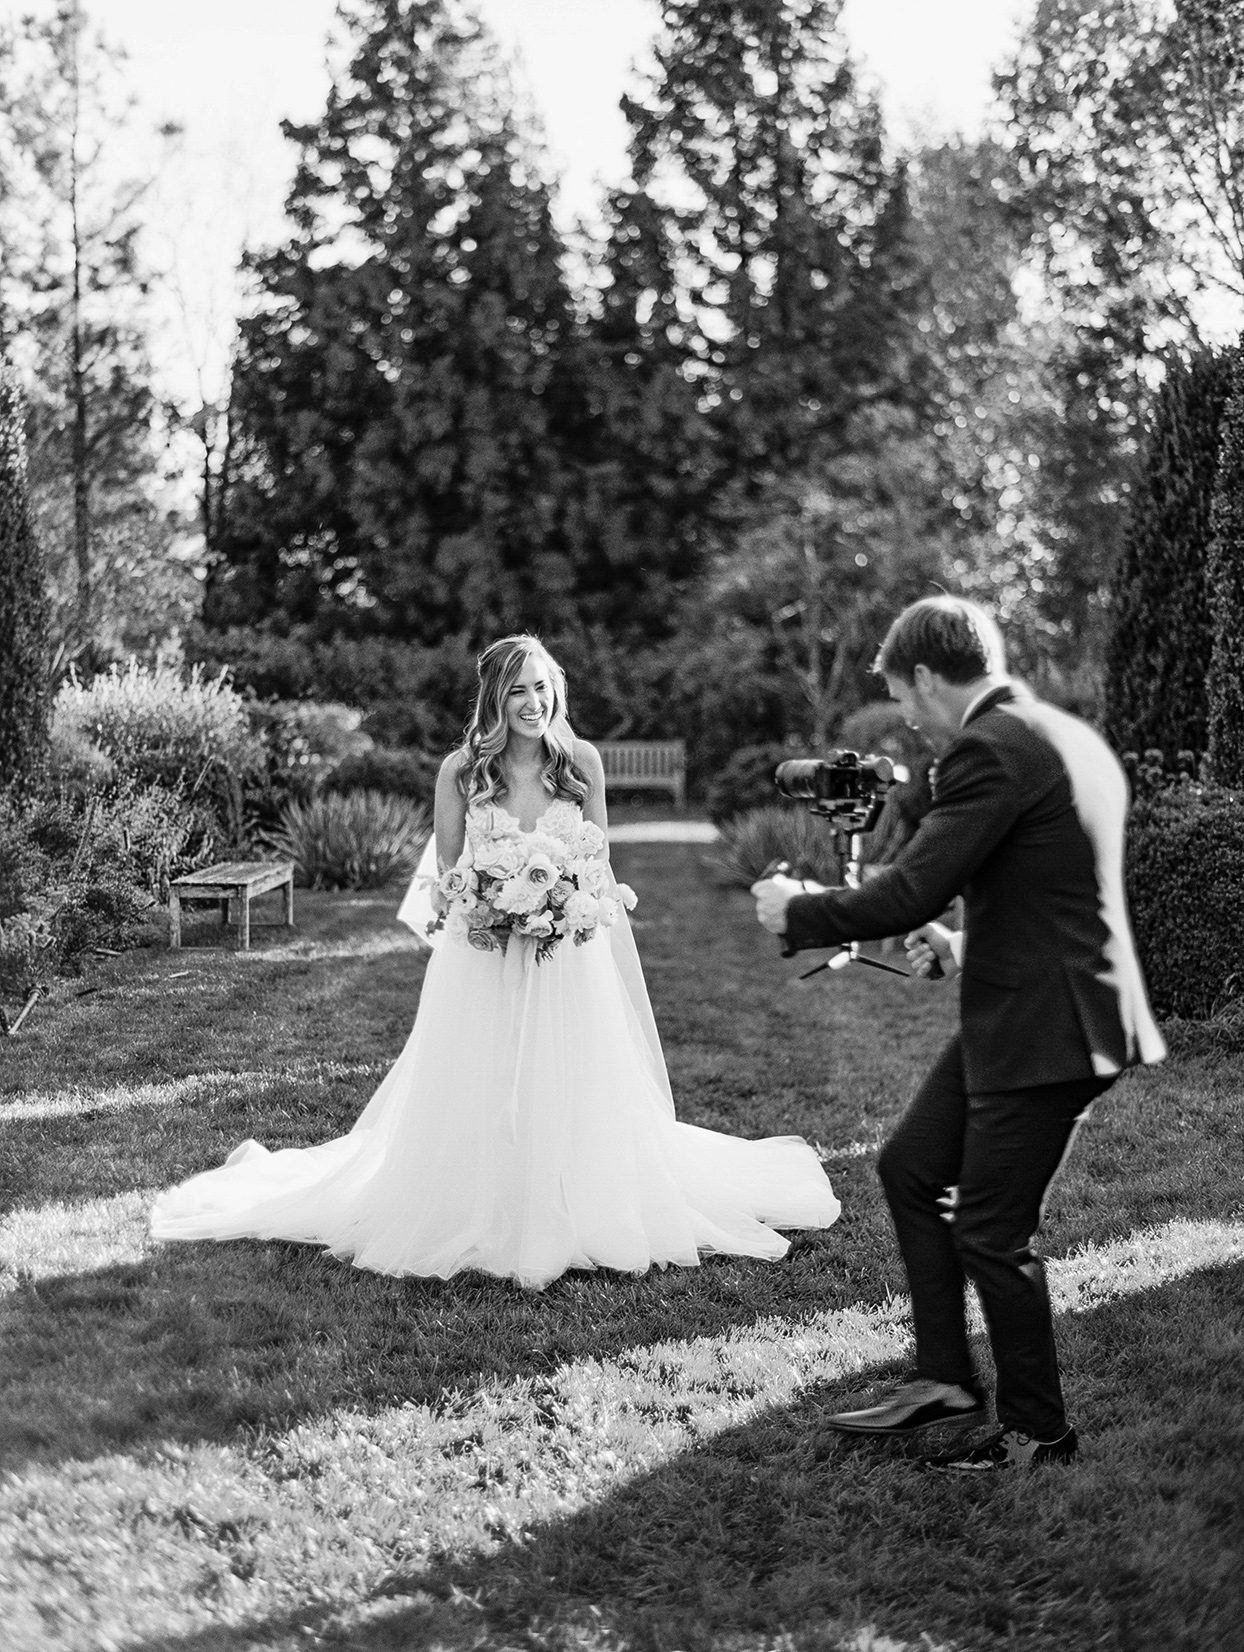 groom filming bride in garden while both are laughing